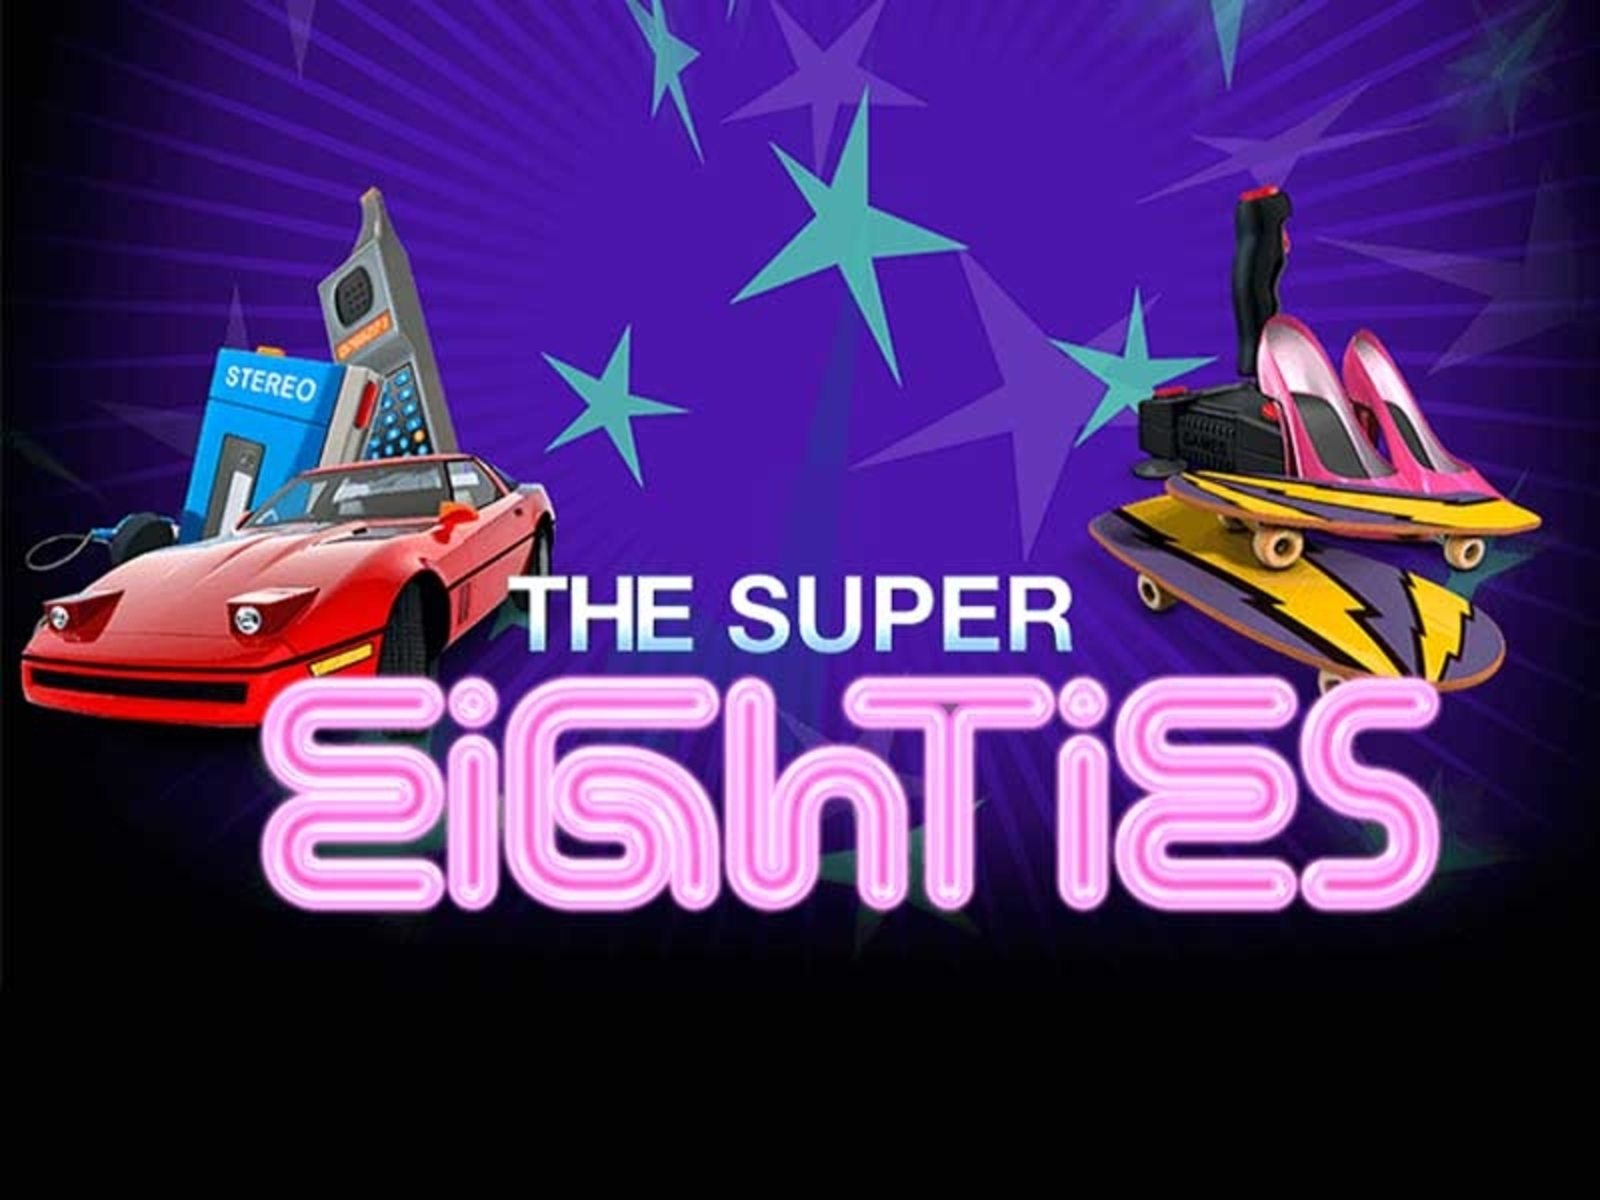 Se The Super Eighties Online Slot Demo Game, NetEnt